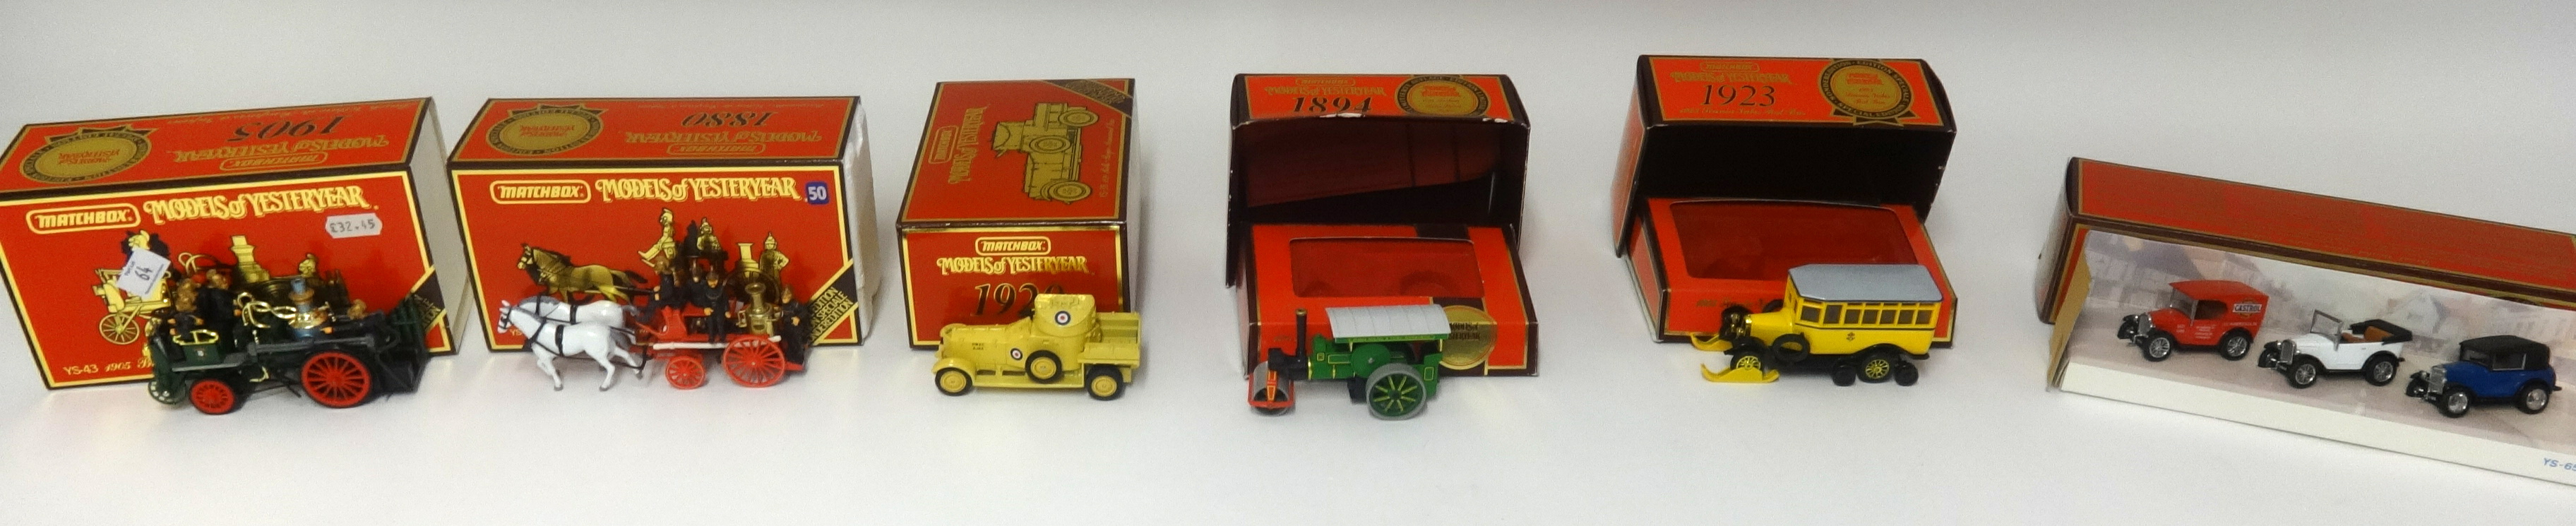 Lot 064 - A collection of Matchbox Models of Yesteryear which includes advertising vans and a Y16 Cadillac and